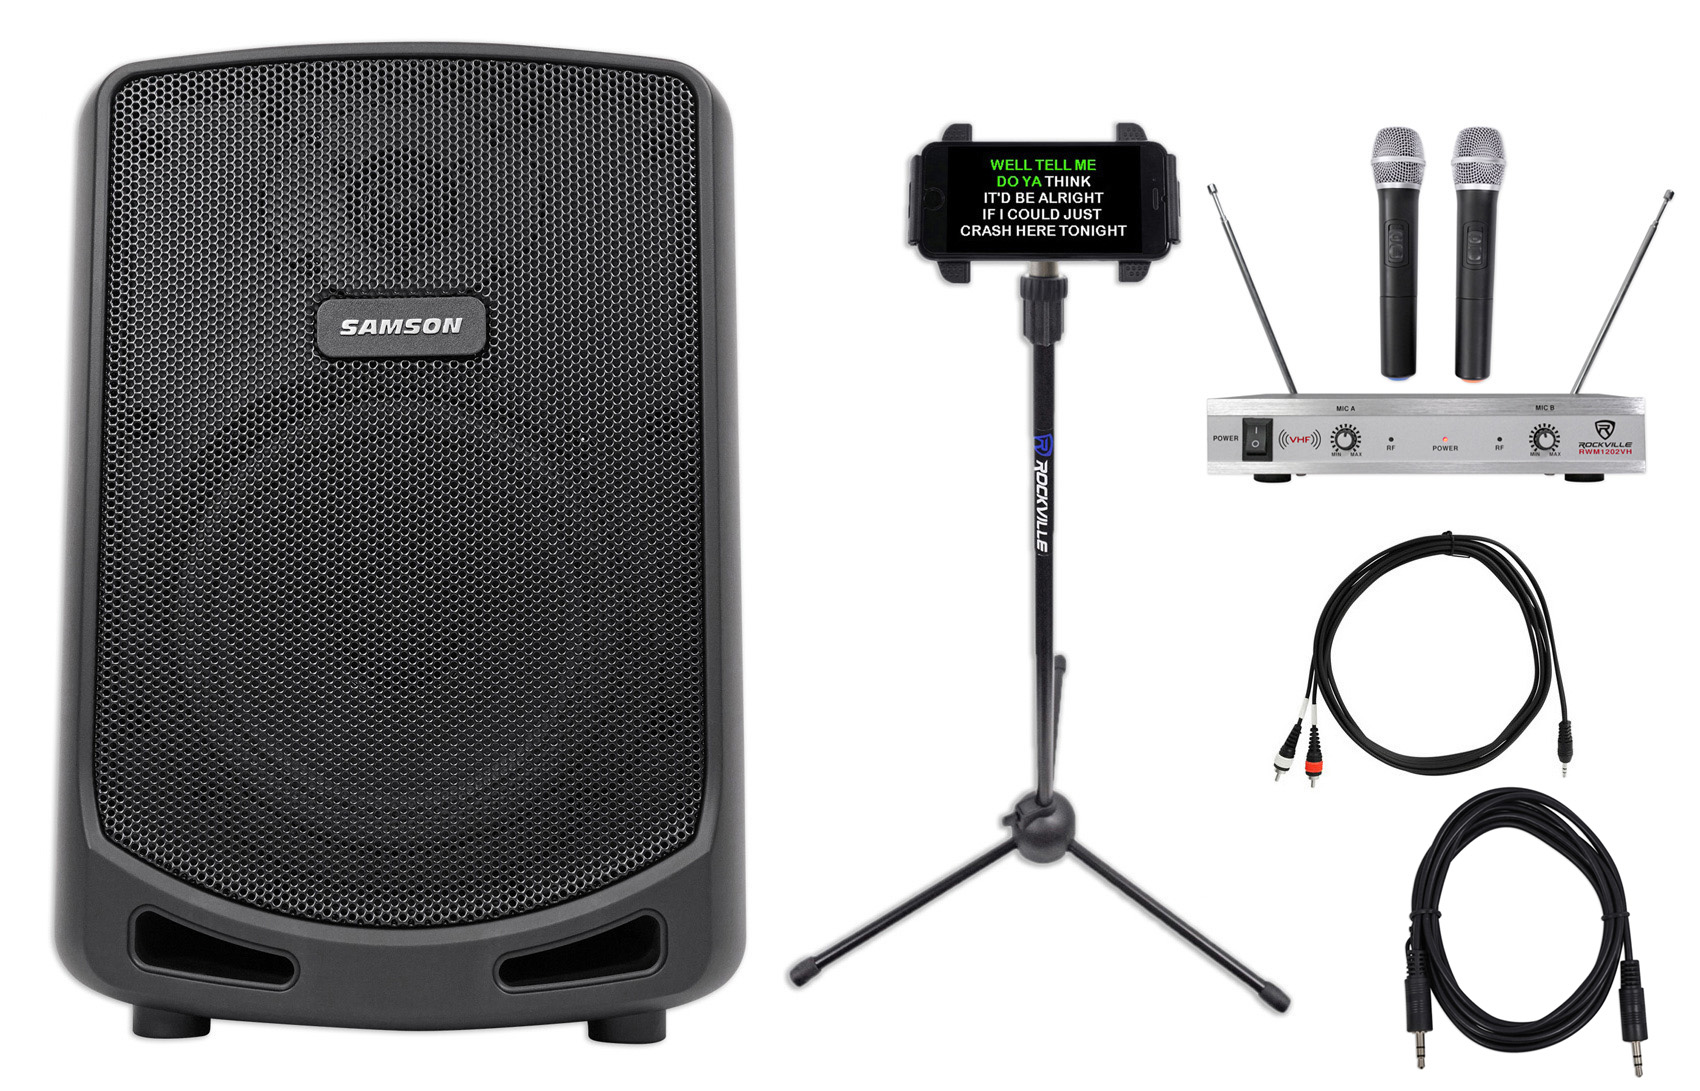 "Samson 6"" Portable YouTube Karaoke Machine System+2 Mics+Tablet Smartphone Stand by Samson"